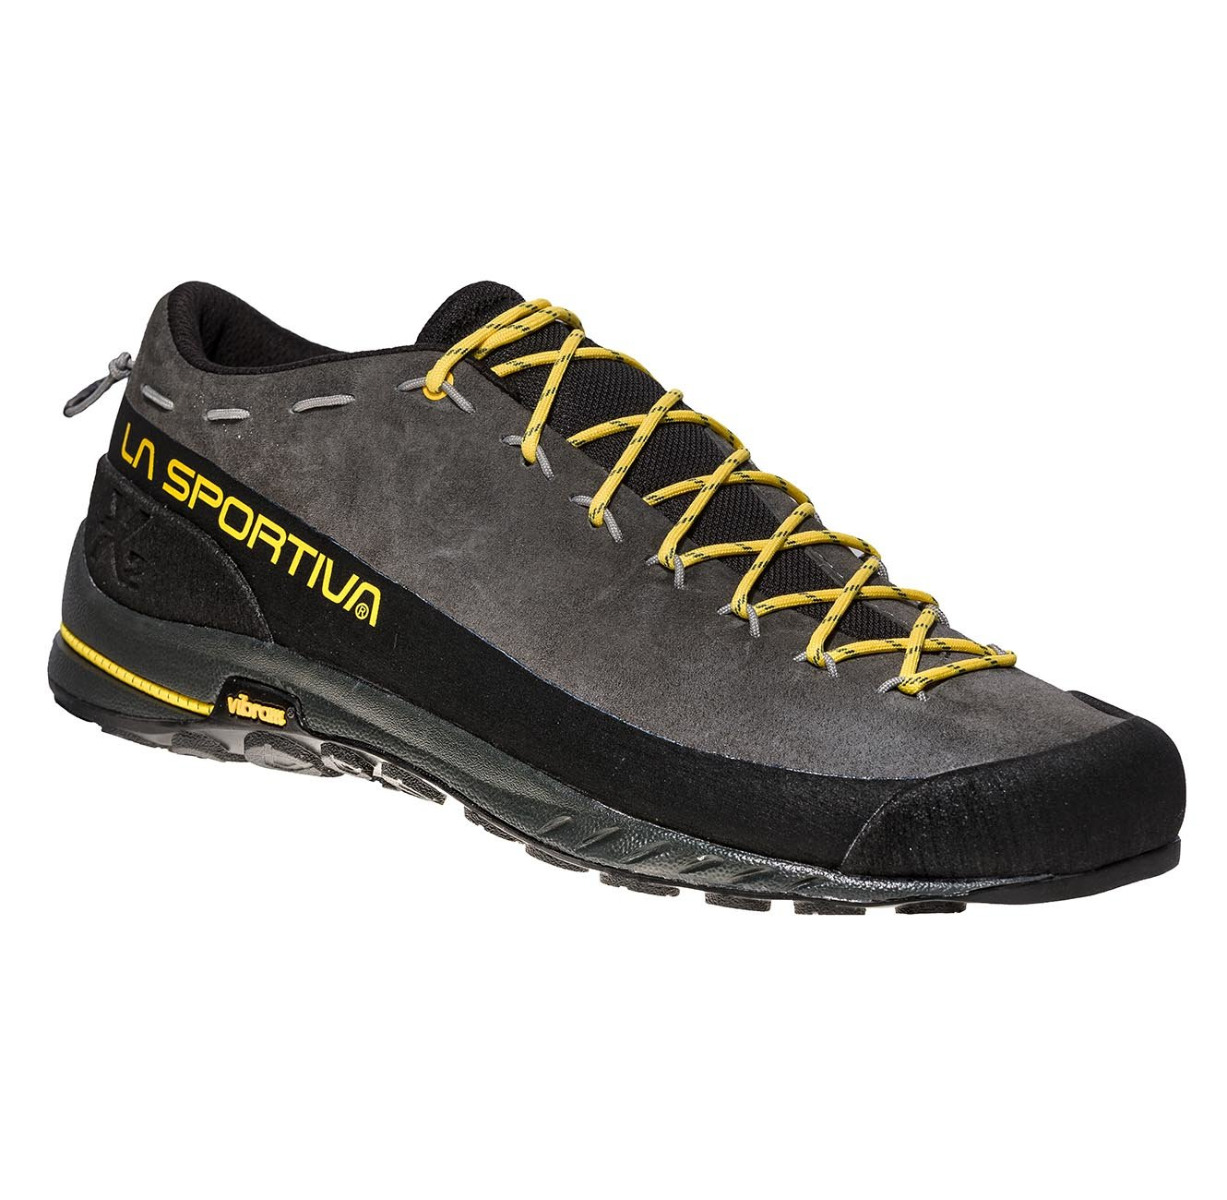 LA SPORTIVA La Sportiva TX2 Leather carbon / yellow 41